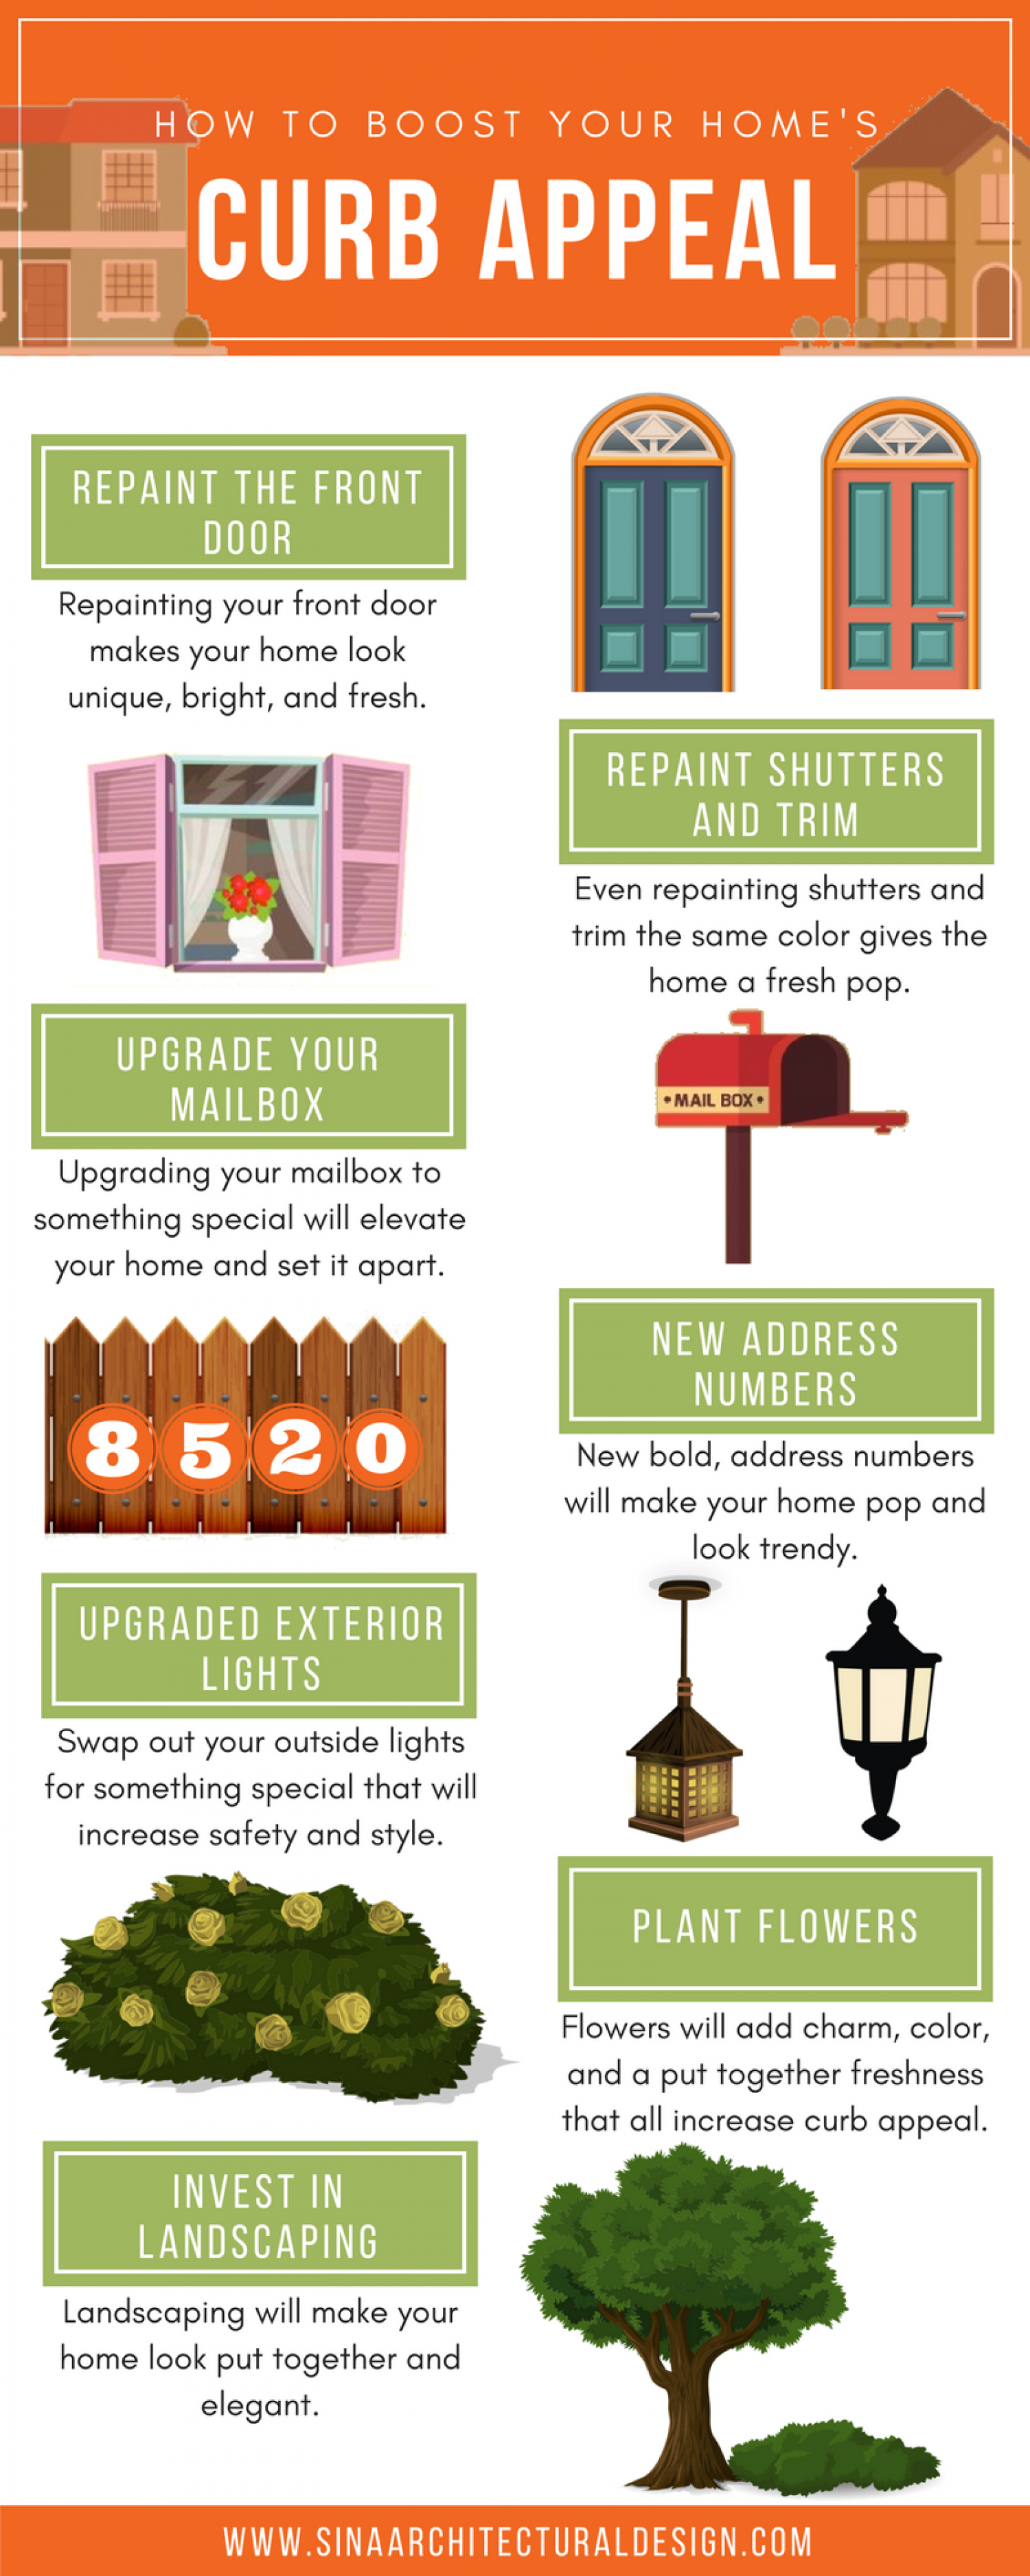 How to Boost Your Home's Curb Appeal Infographic